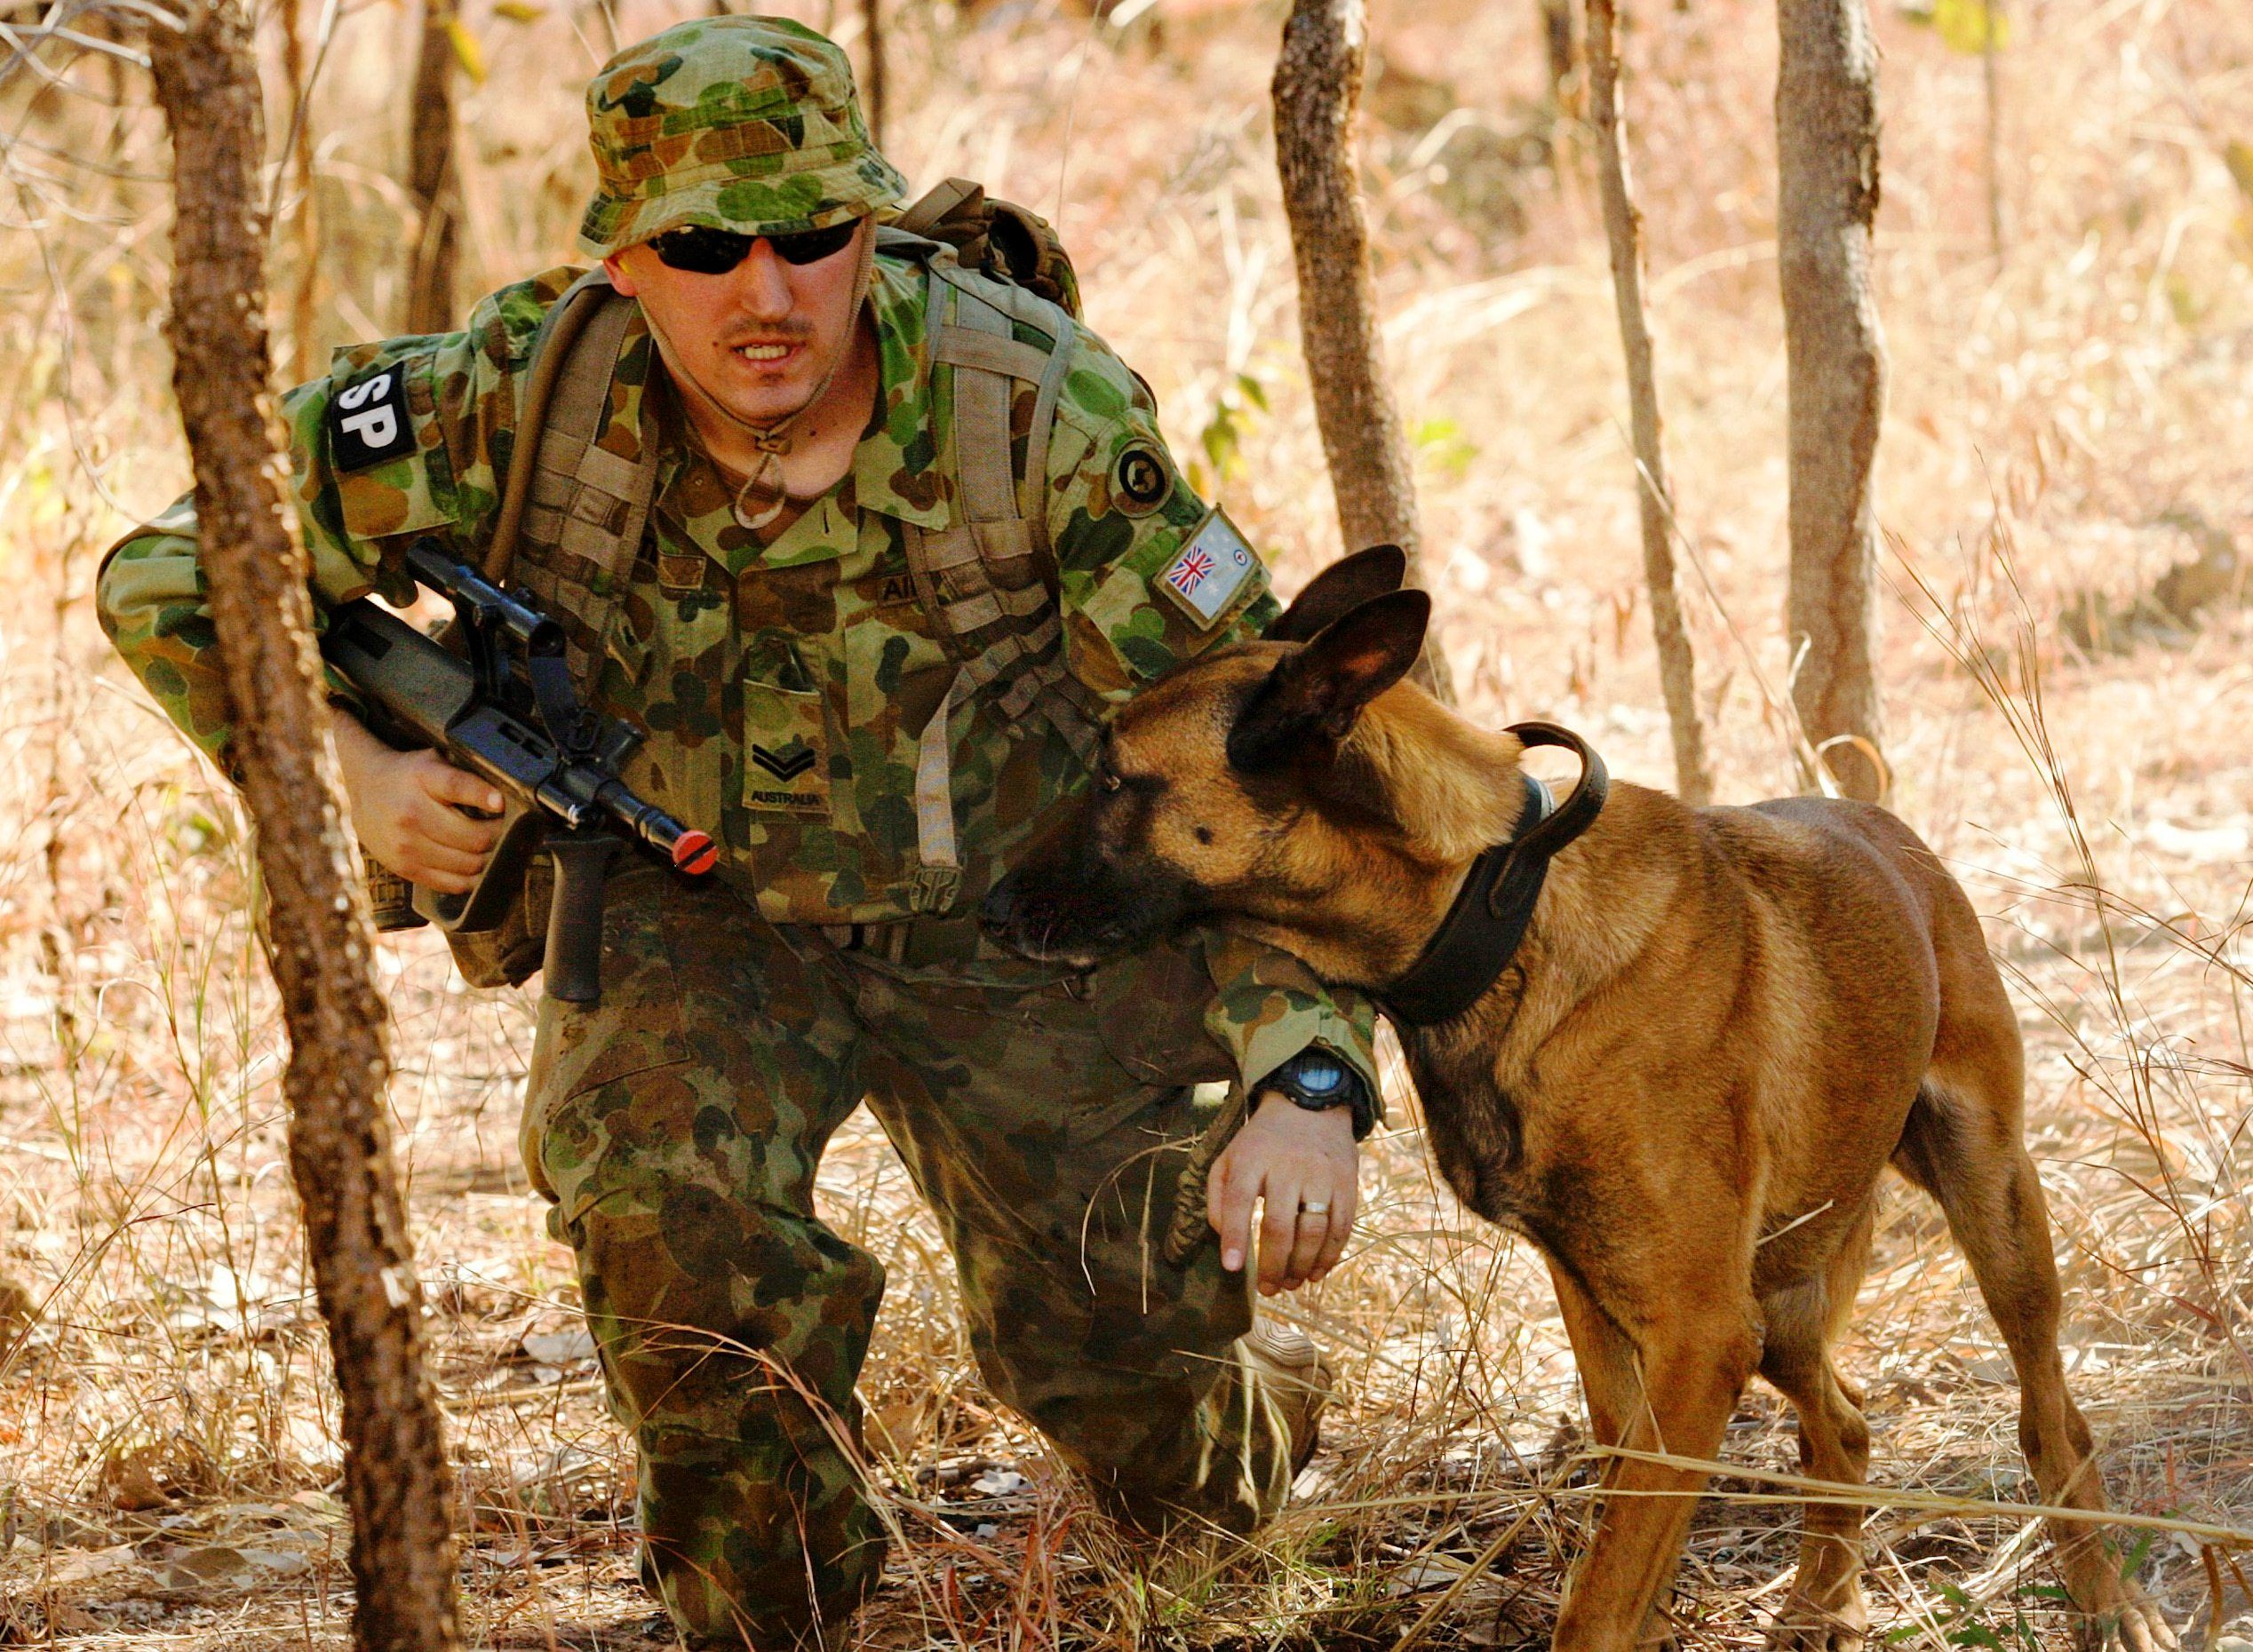 Australian Military Working Dogs Military dogs, Military